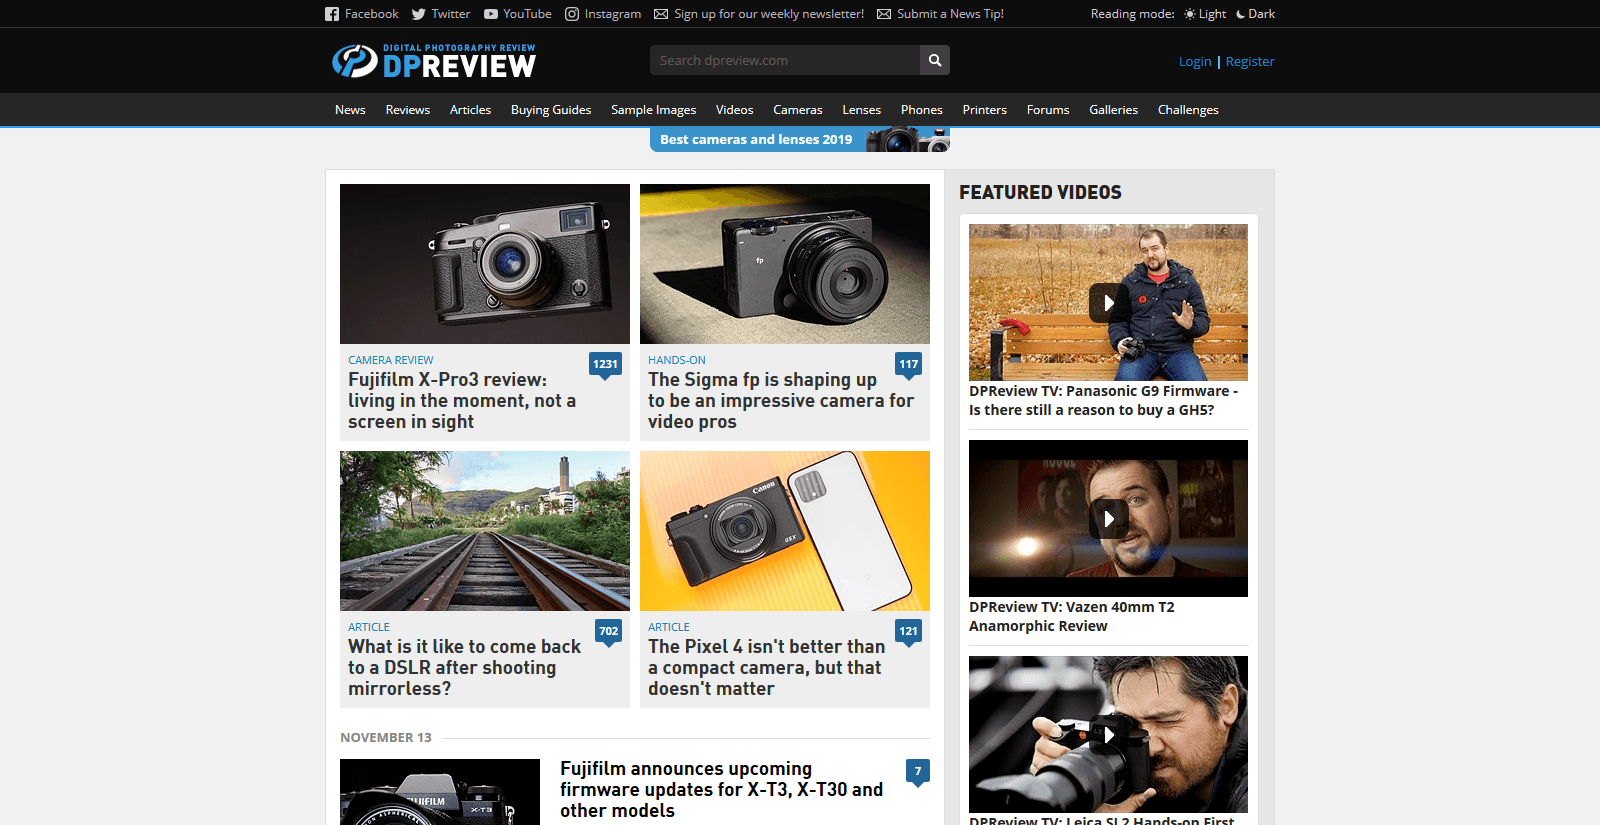 www.dpreview.com